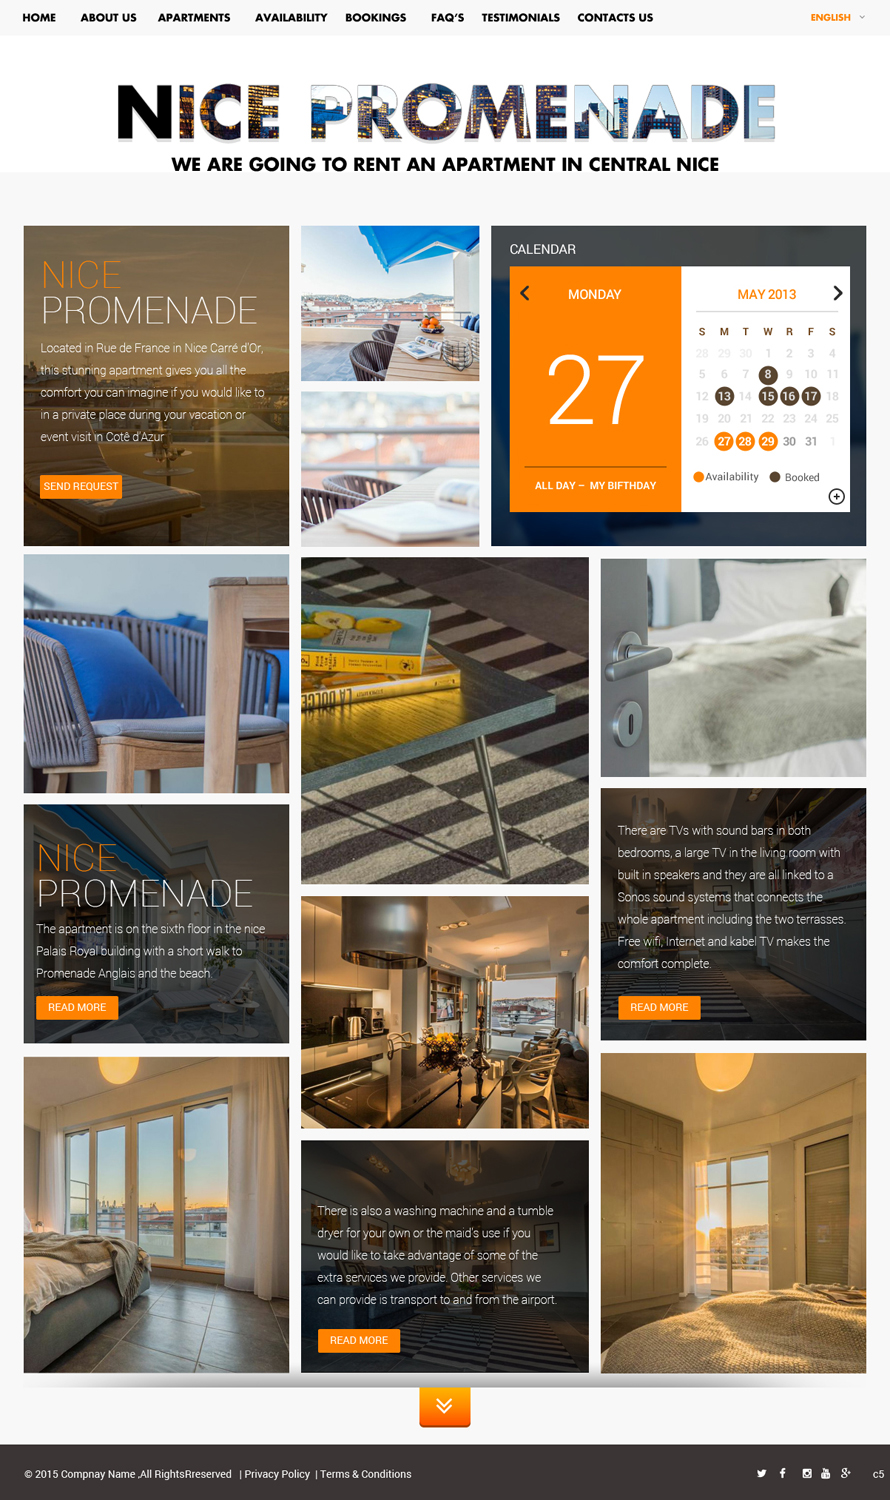 Apartment web design for a company by pb design 5780854 for Apartment web design